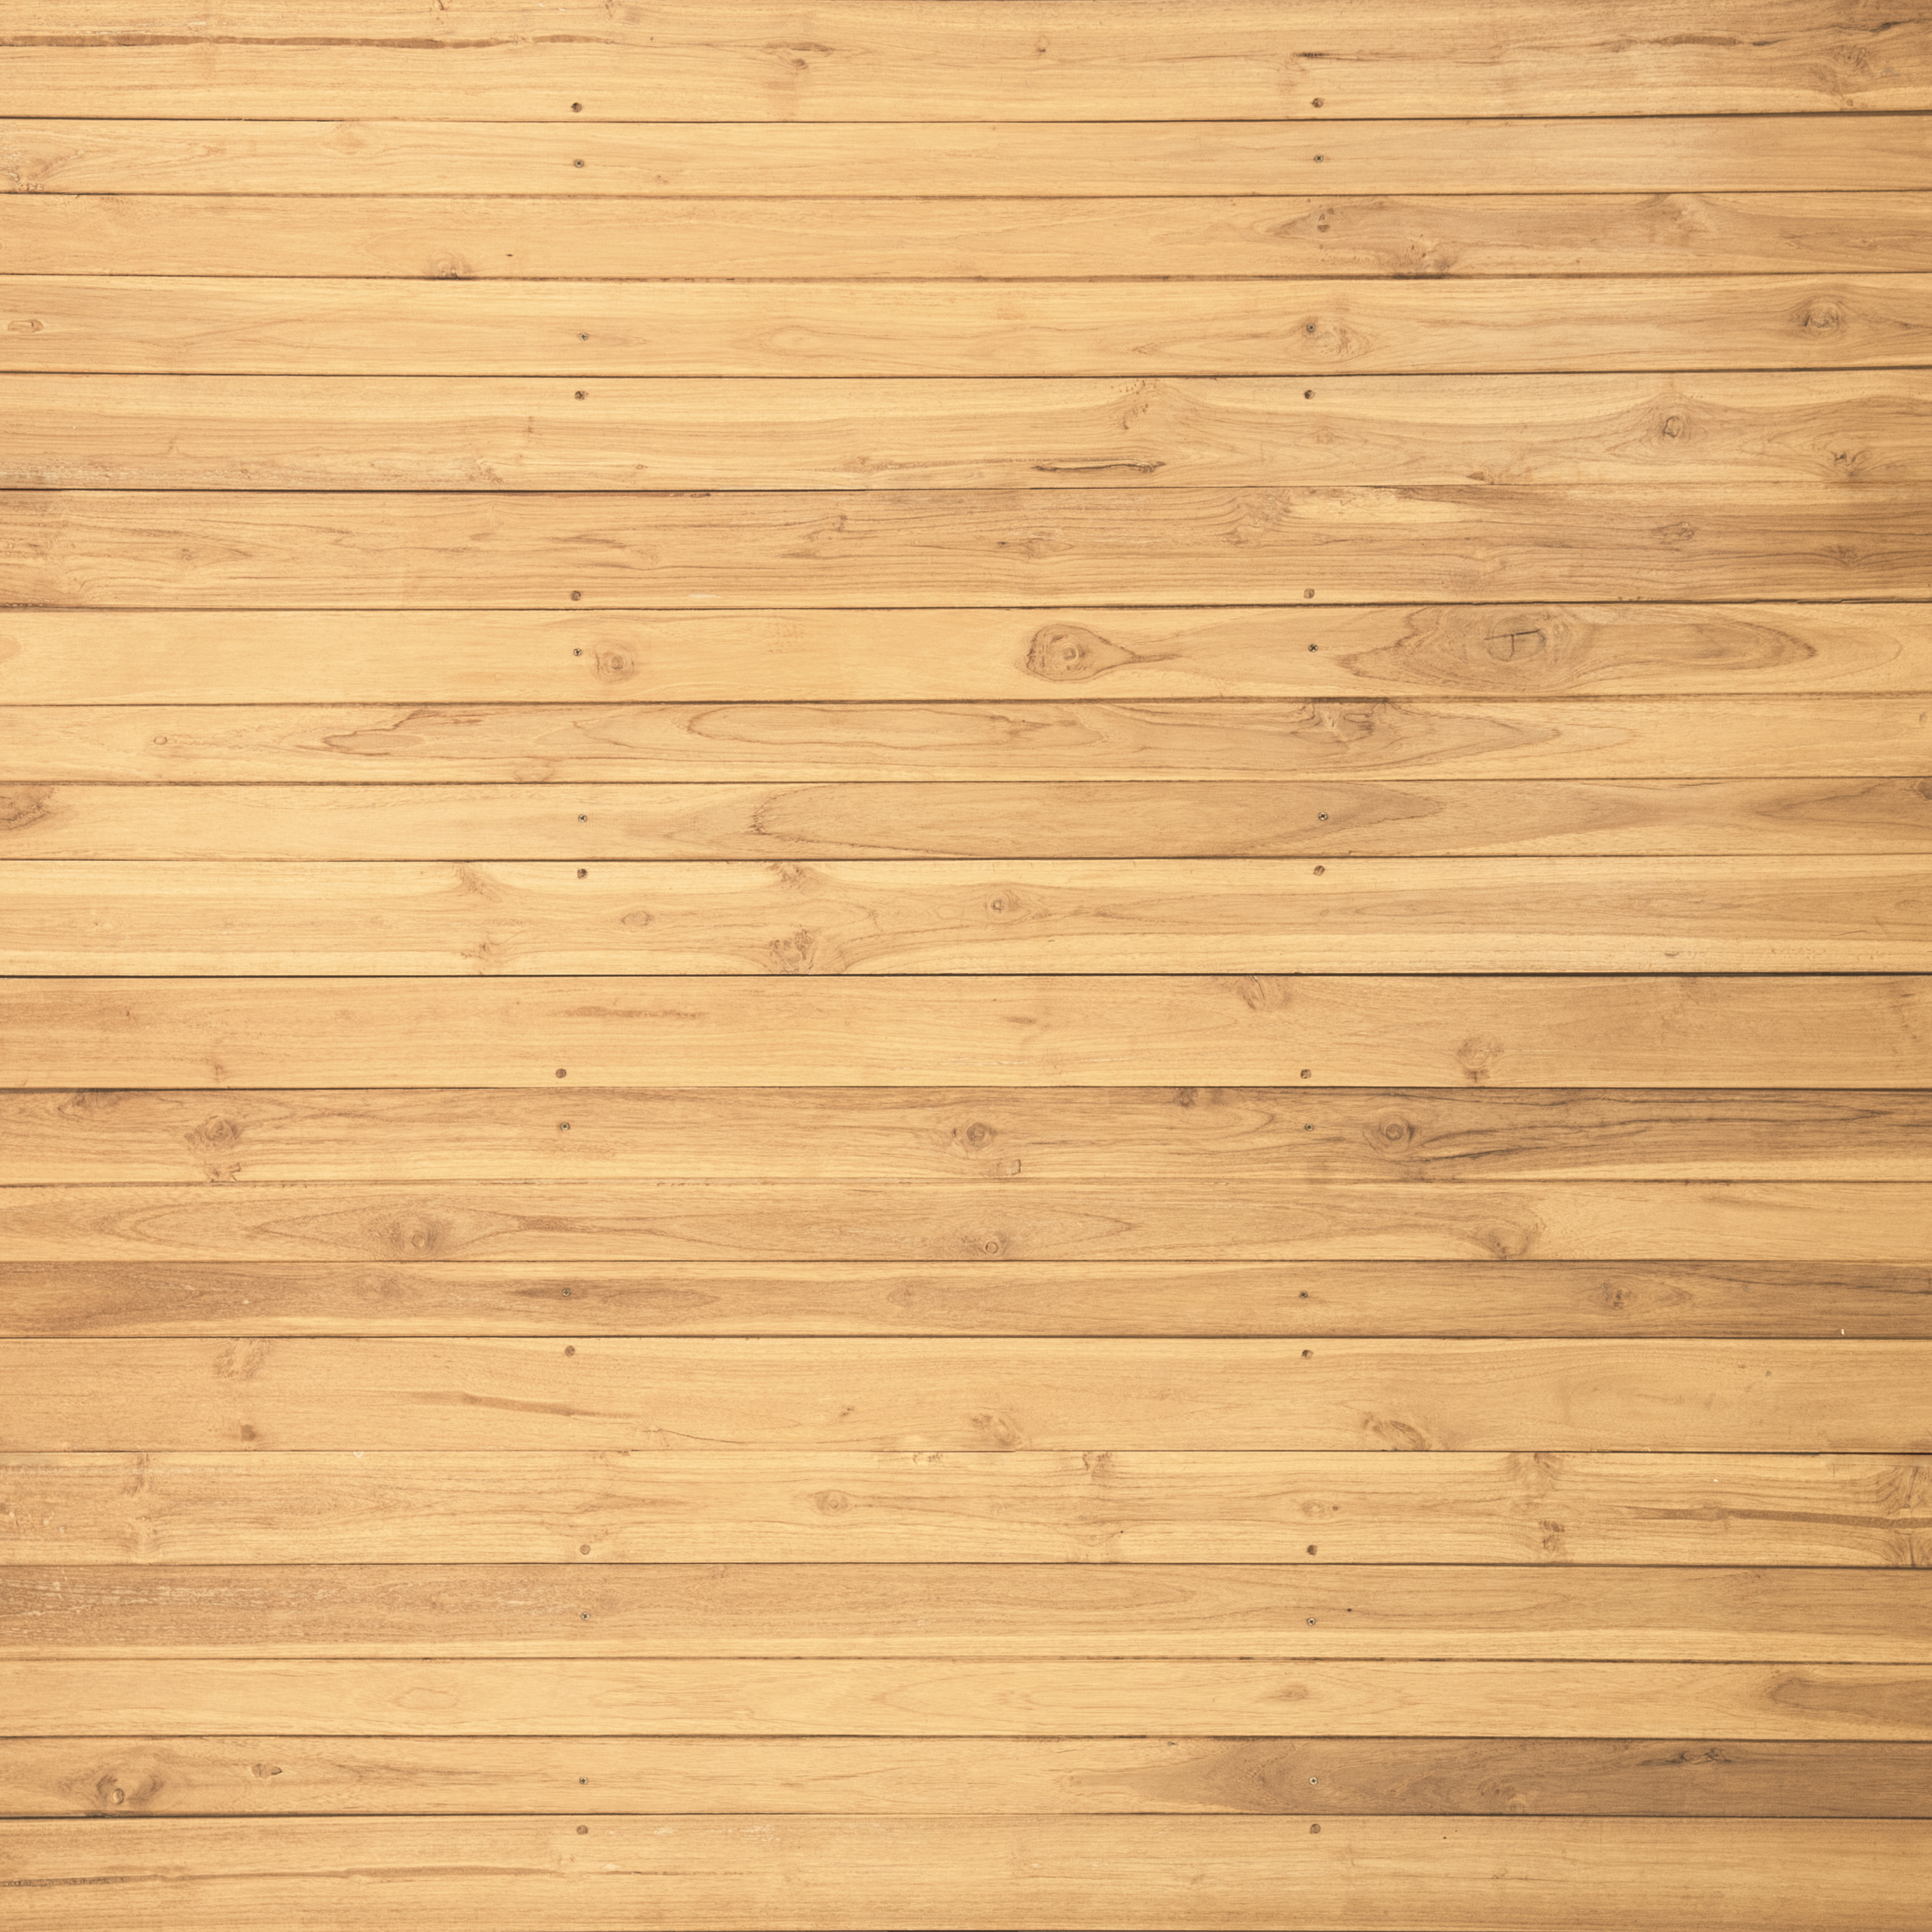 wood floor free stock photo of wood, building, construction, pattern KJKPYXG